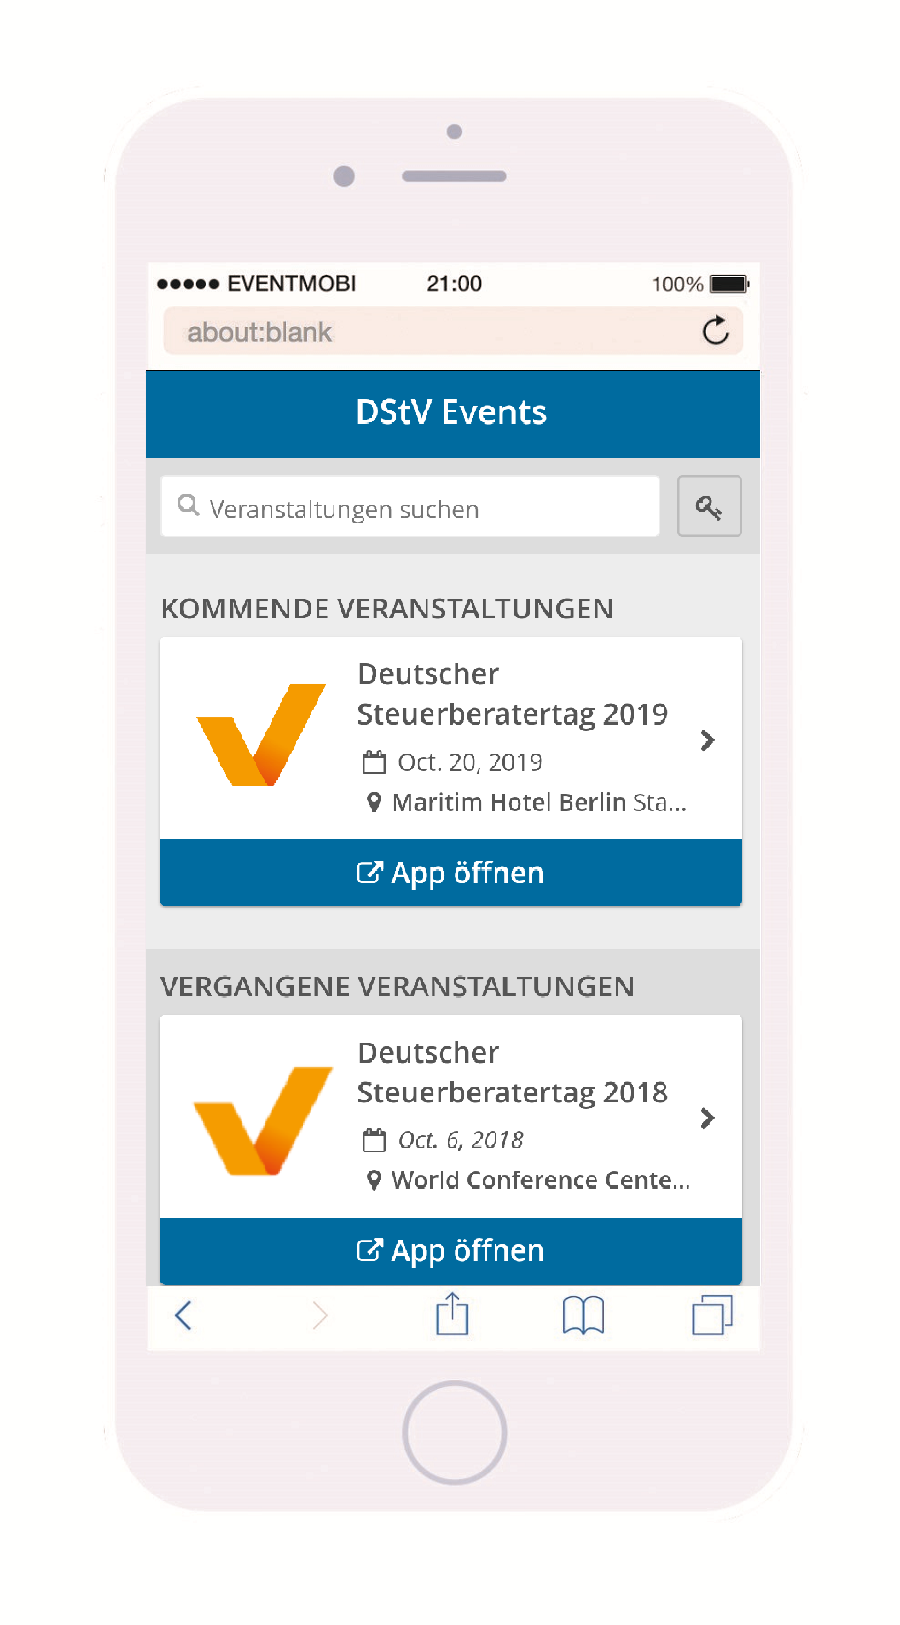 DStV Events